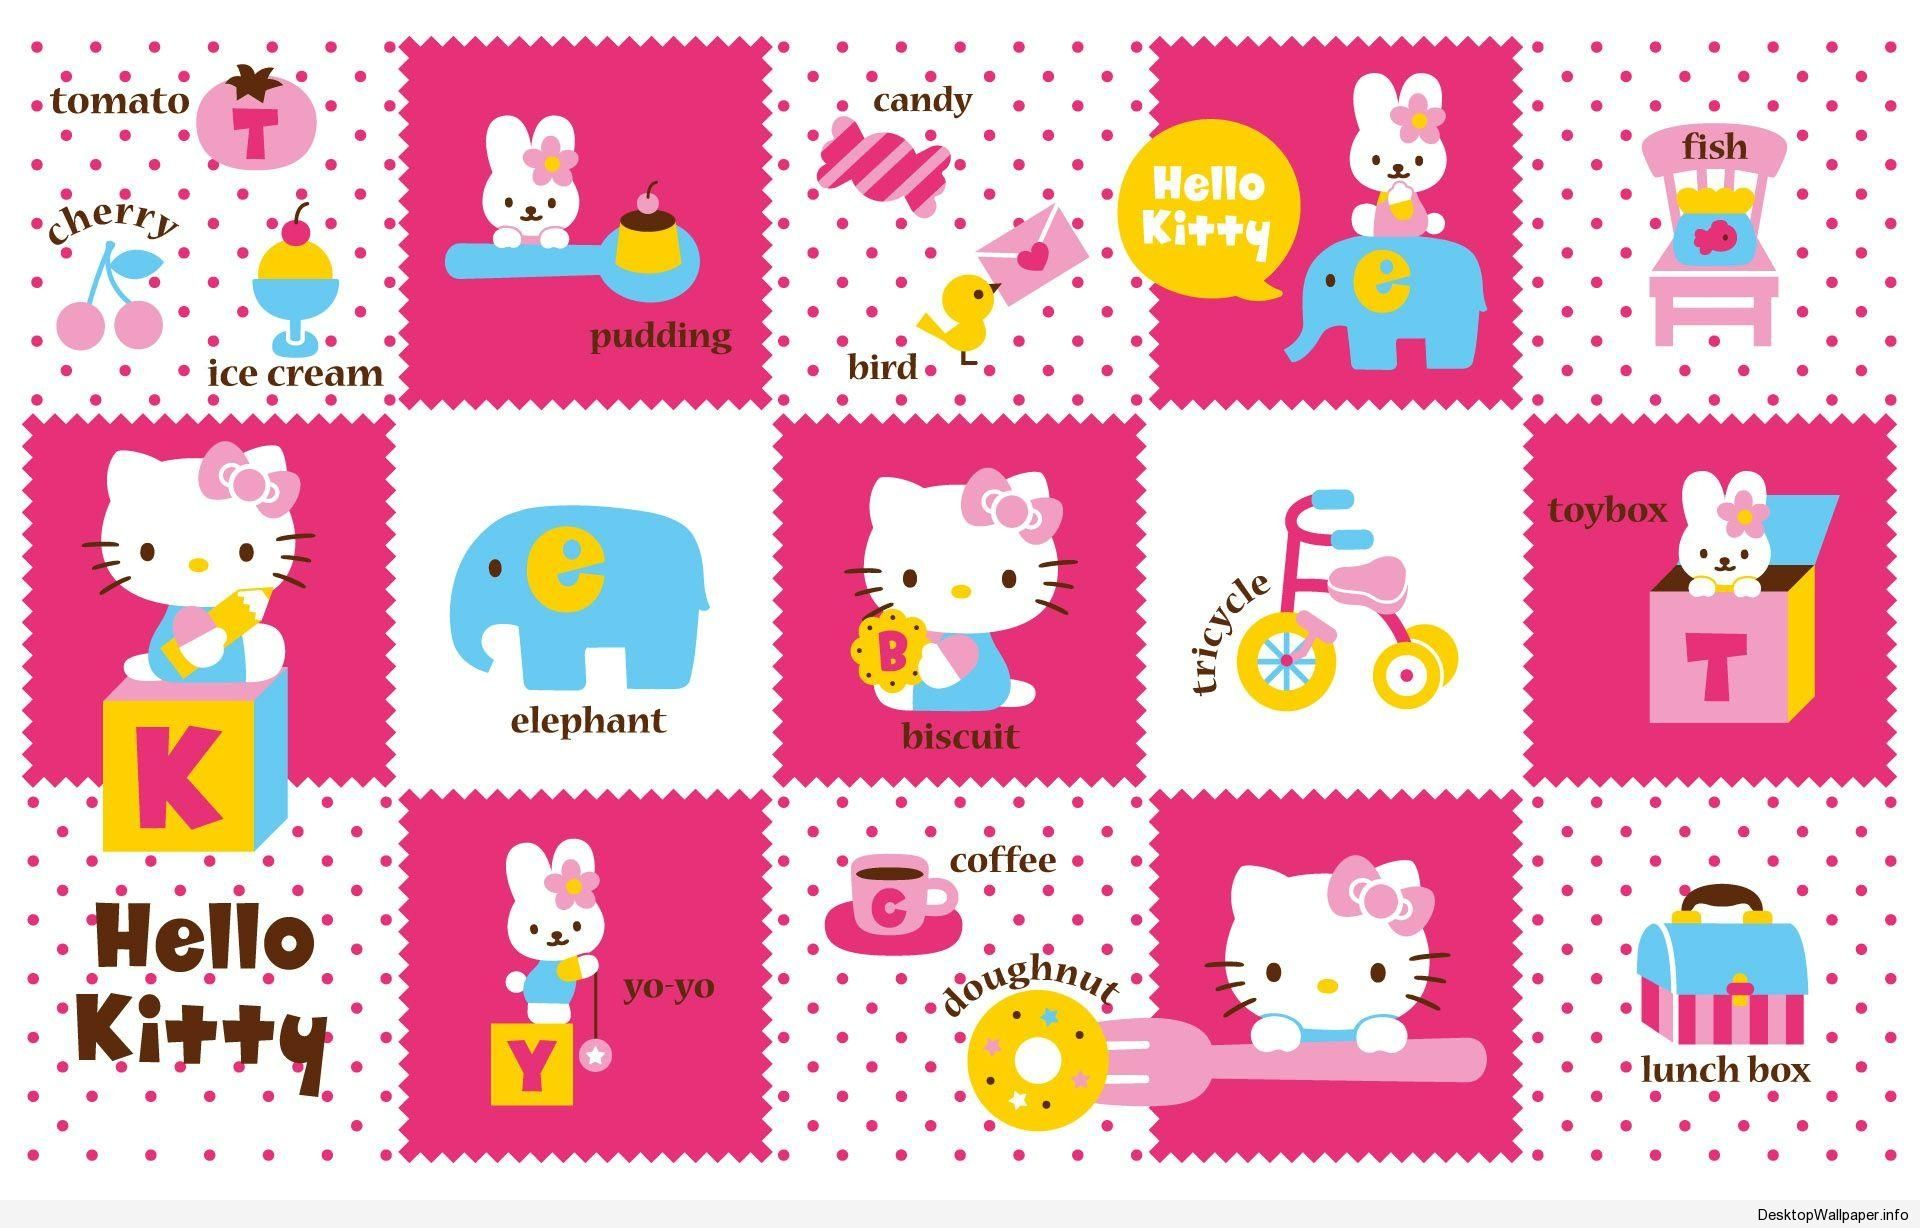 Wallpaper Hello Kitty Untuk Laptop Desktopwallpaper